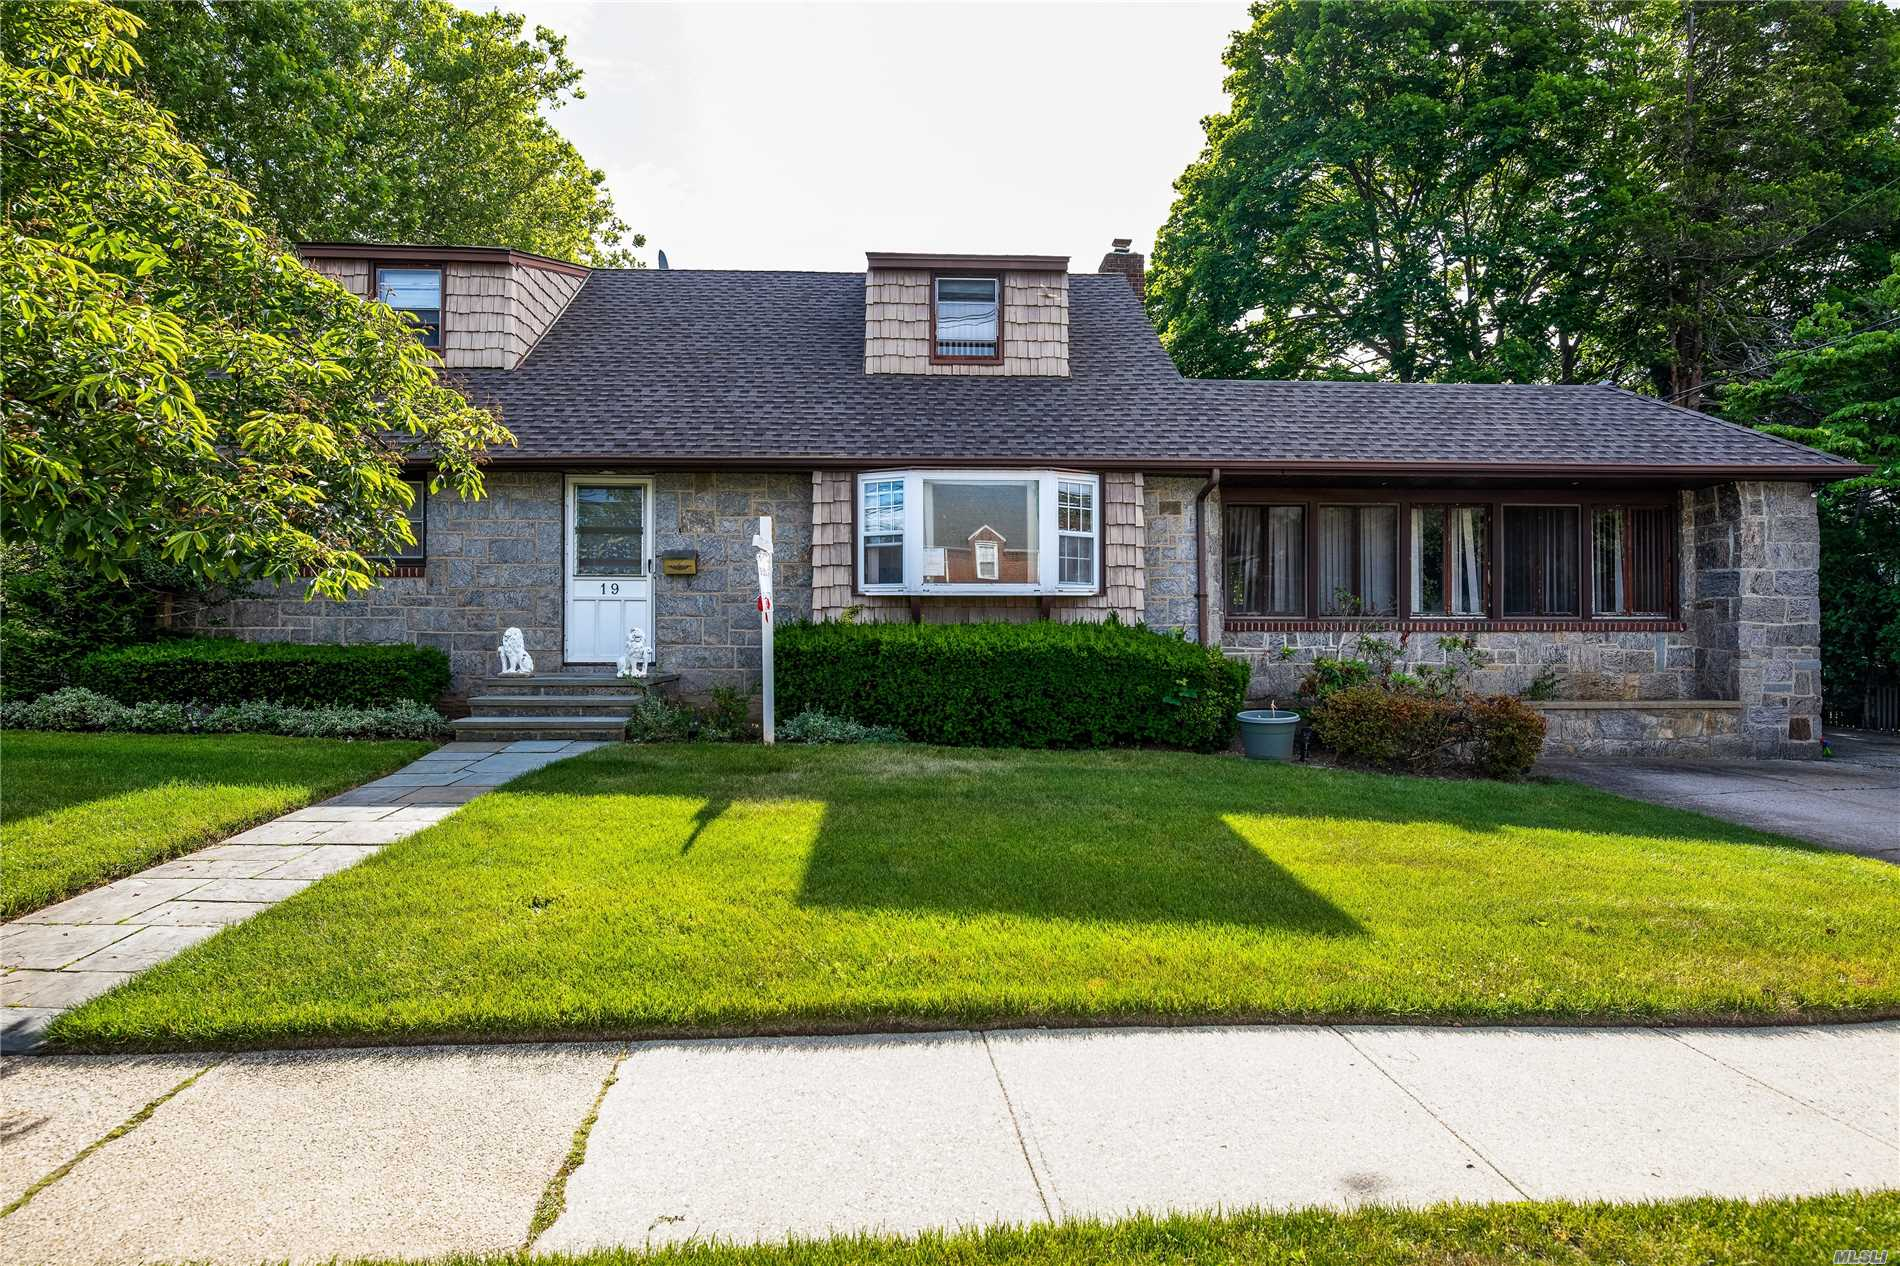 Beautiful Field Stone Dormered Cape With 4 Spacious Bedrooms/2.5 Bathroom, Oversized Family Room, Hardwood Floors, Full Finished Basement. Inground Sprinklers. Great Location. Best Value In Rockville Centre.